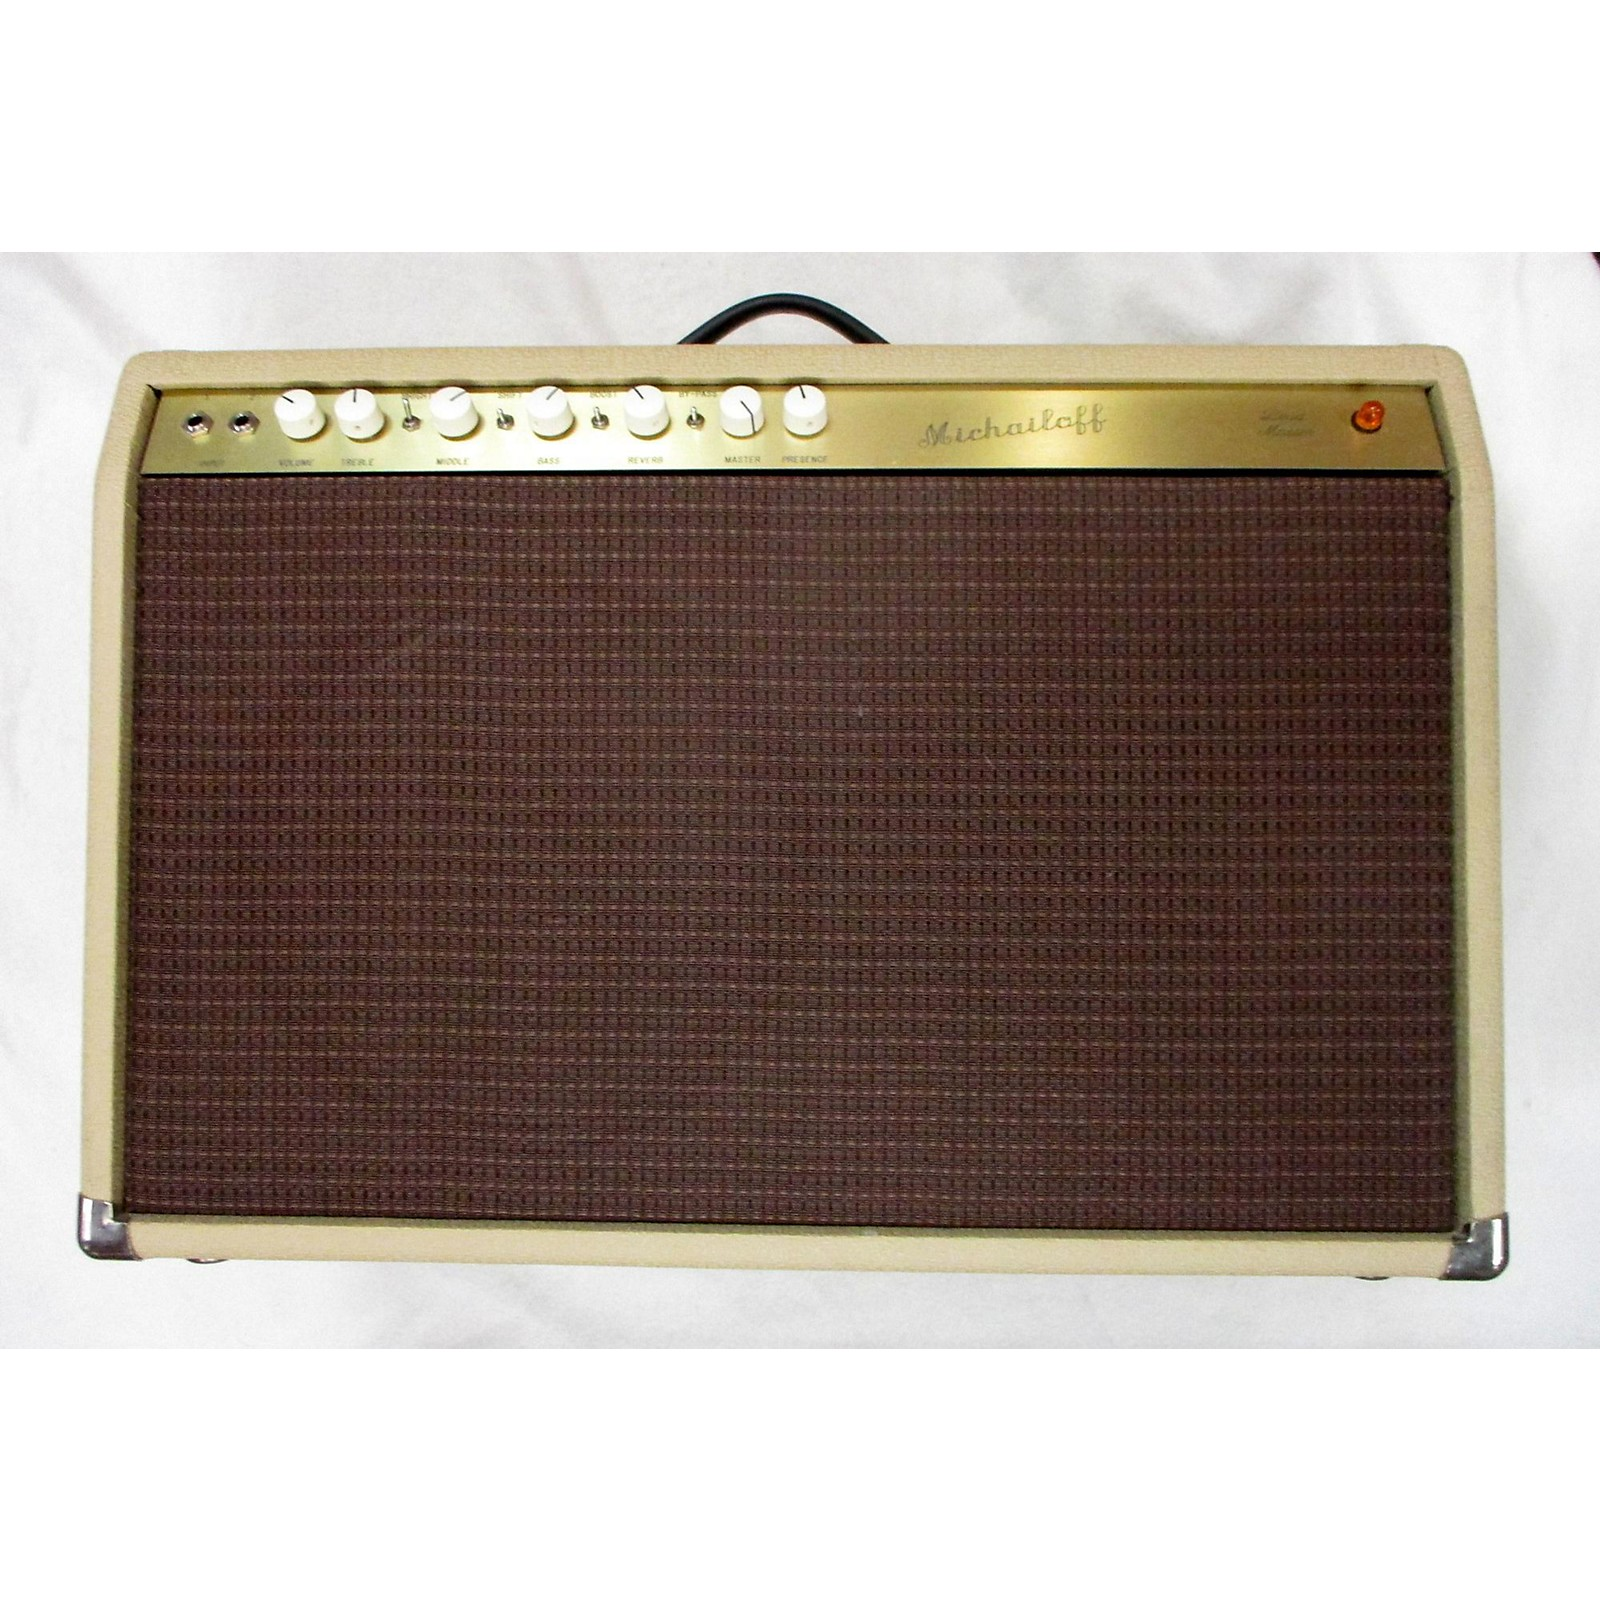 In Store Used Used MICHAELOFF MASTER 112 Tube Guitar Combo Amp